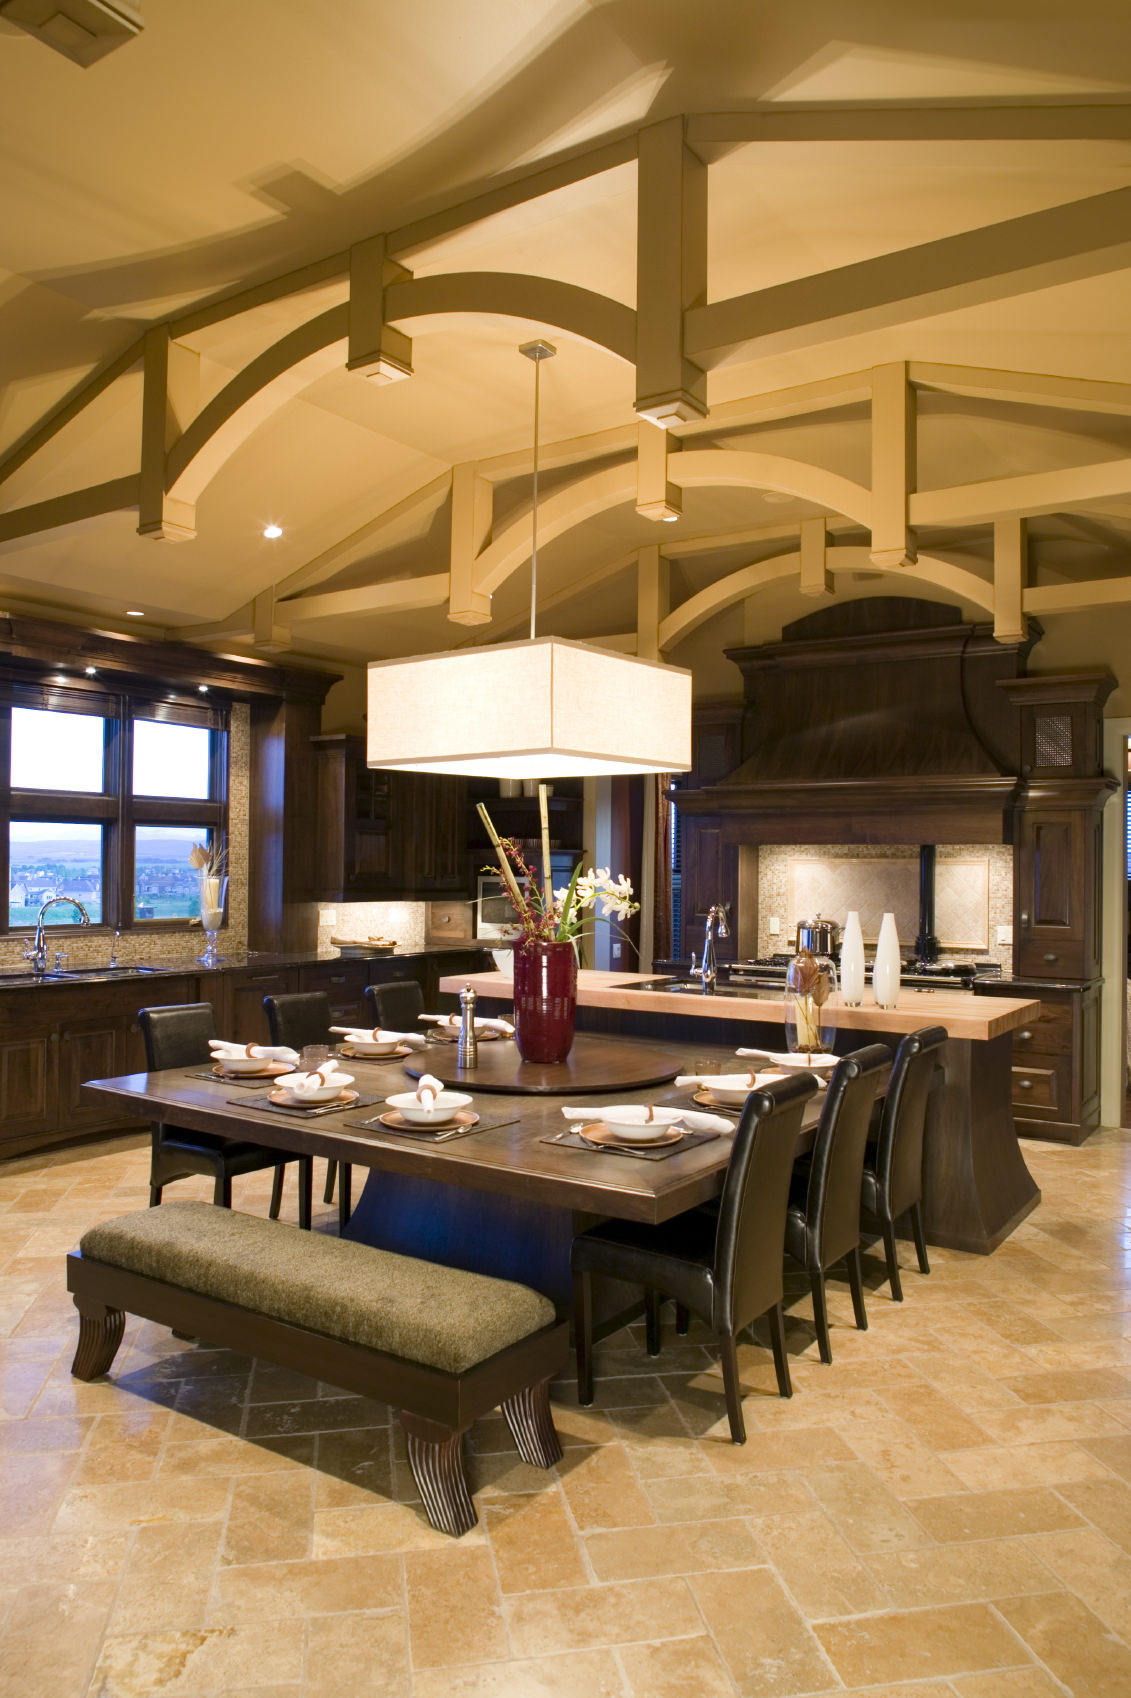 Spectacular kitchen with a towering ceiling, intricate ceiling beams, dark cabinetry, huge dining island - all with Mediterranean flavor.